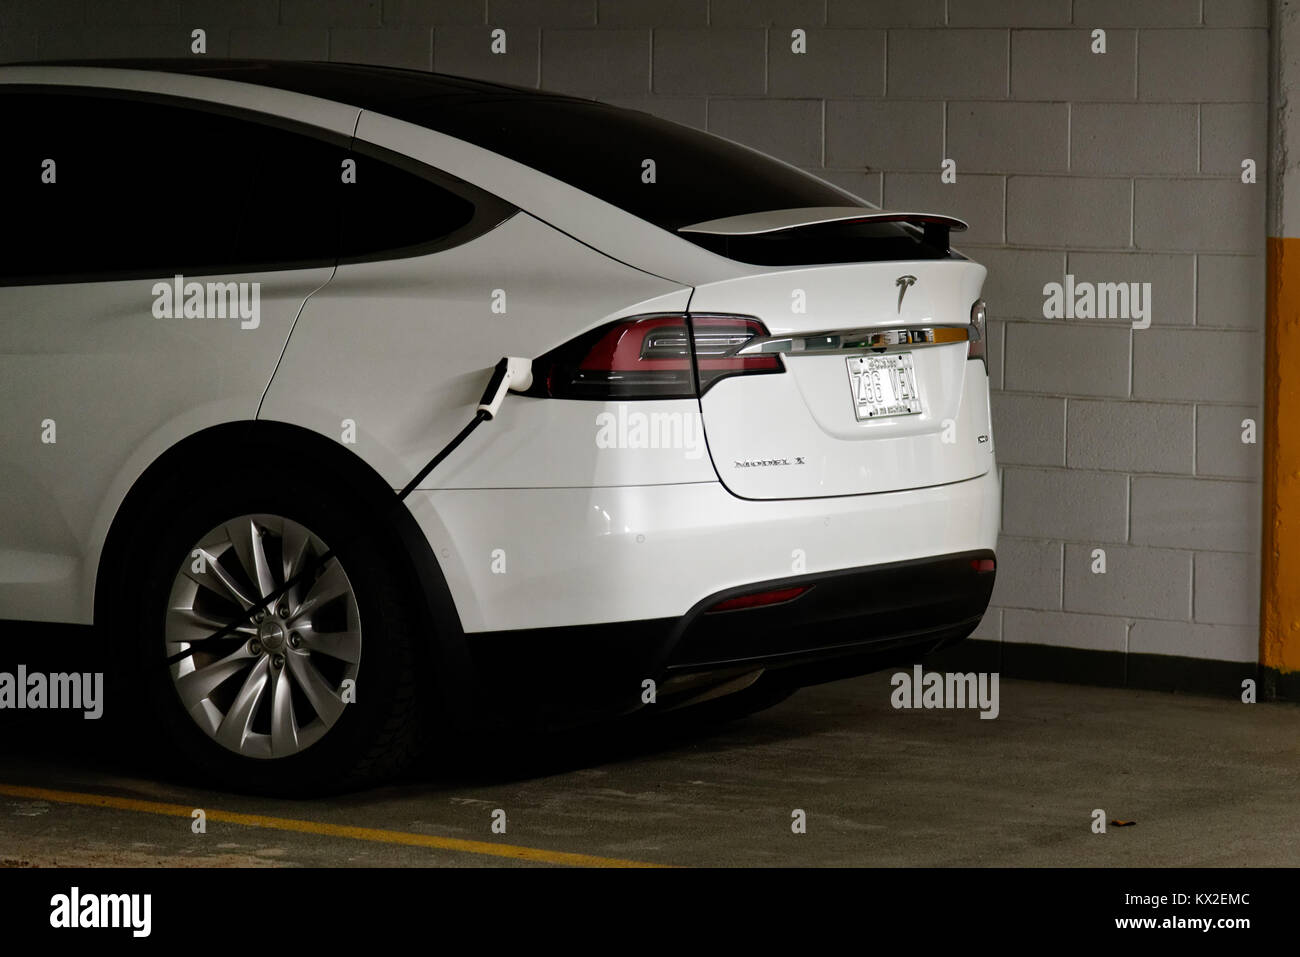 Tesla Model X electric car recharging in a car park in Montreal, Quebec - Stock Image